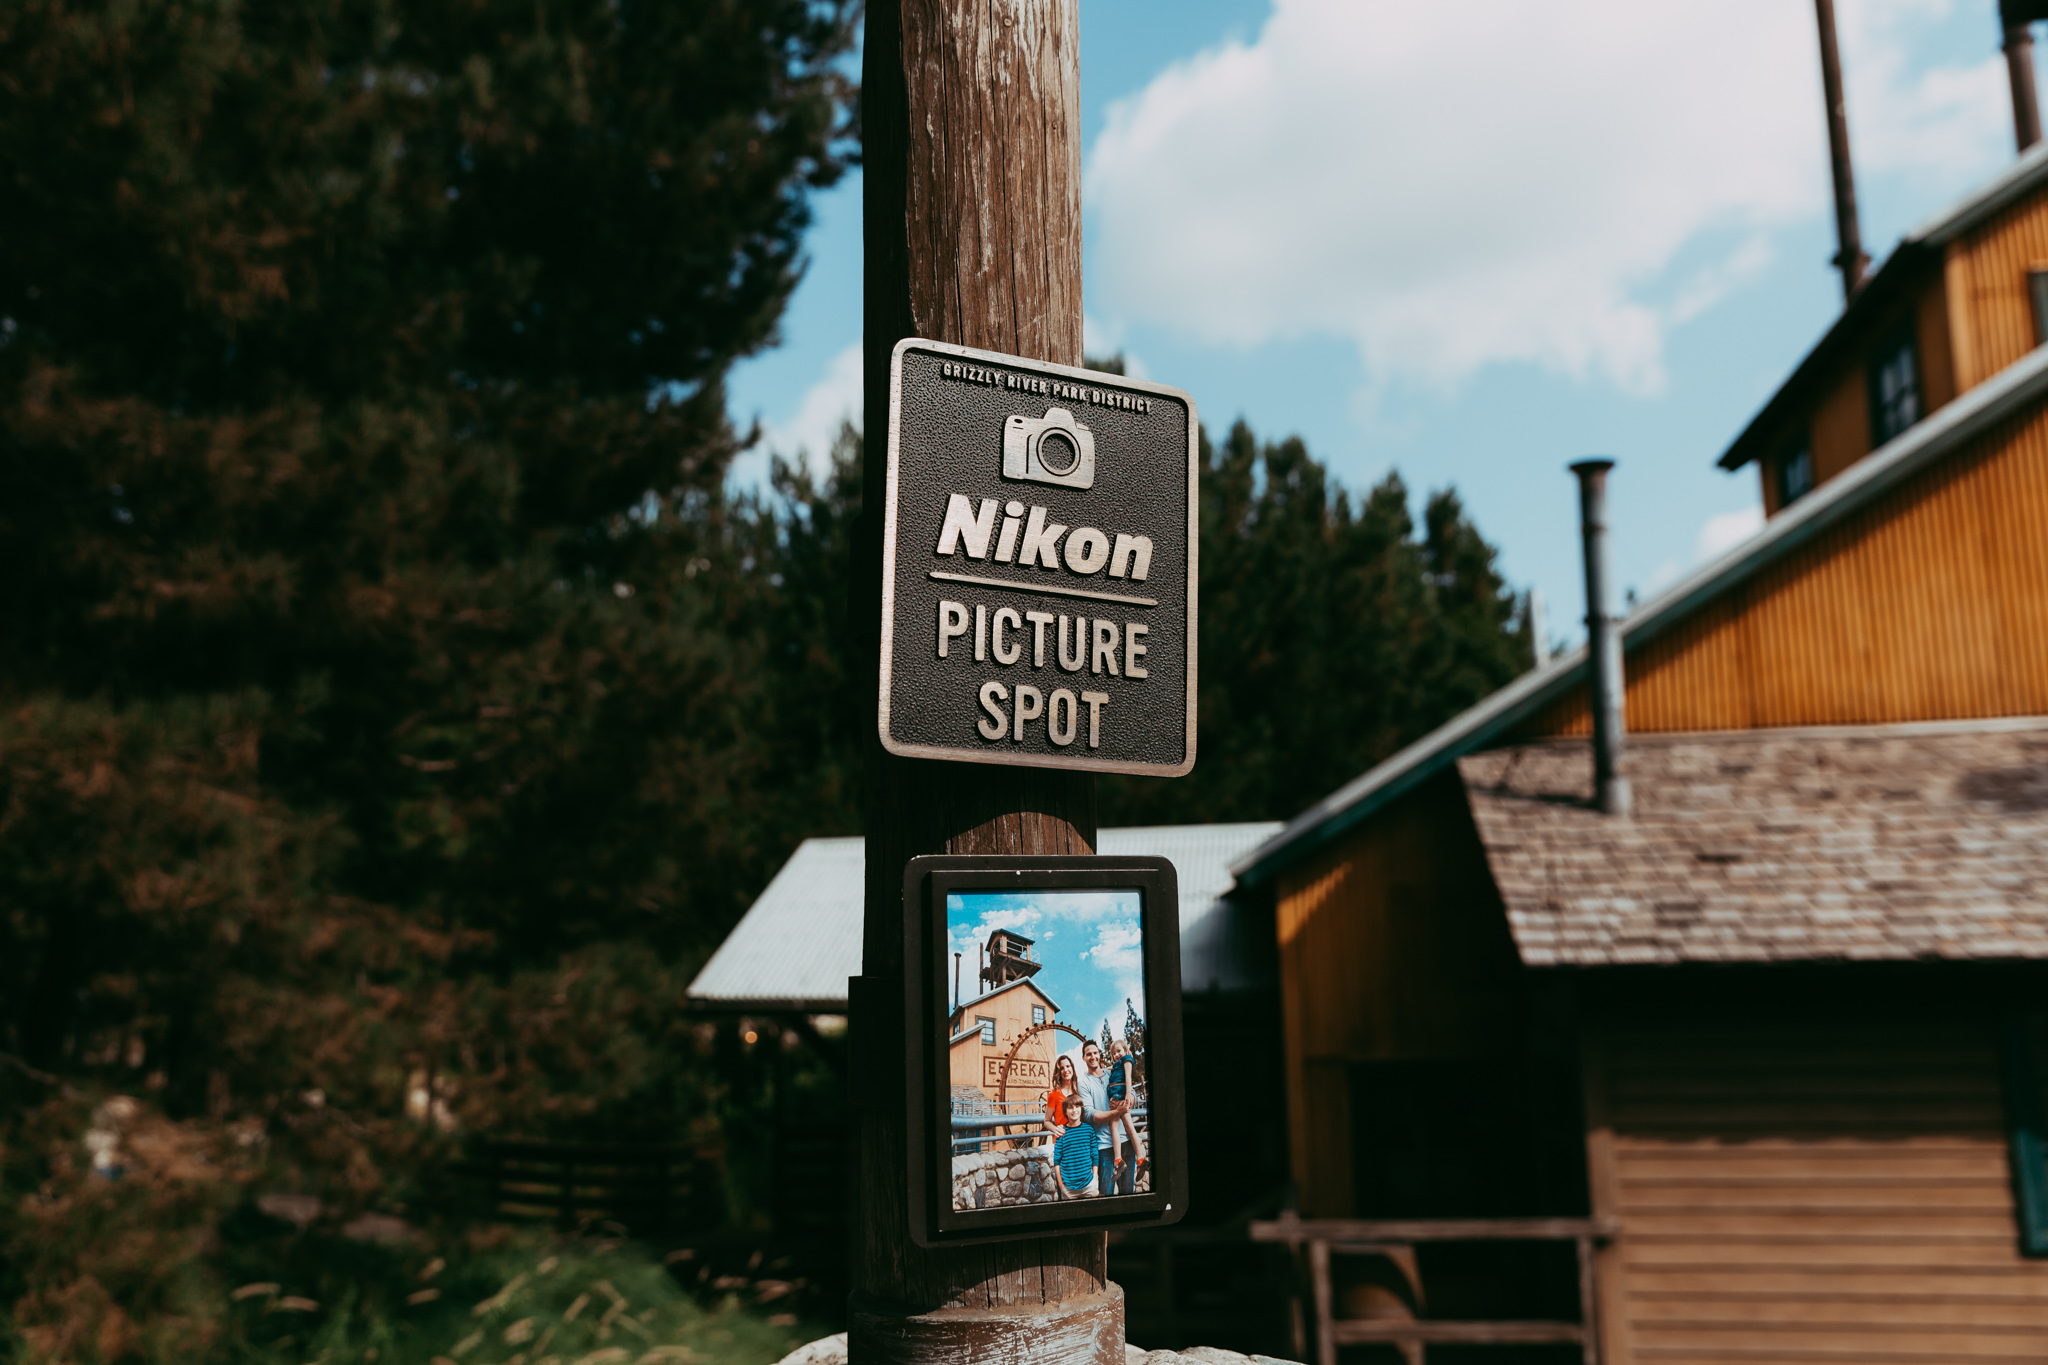 Nikon Picture Spots Located Throughout the Parks